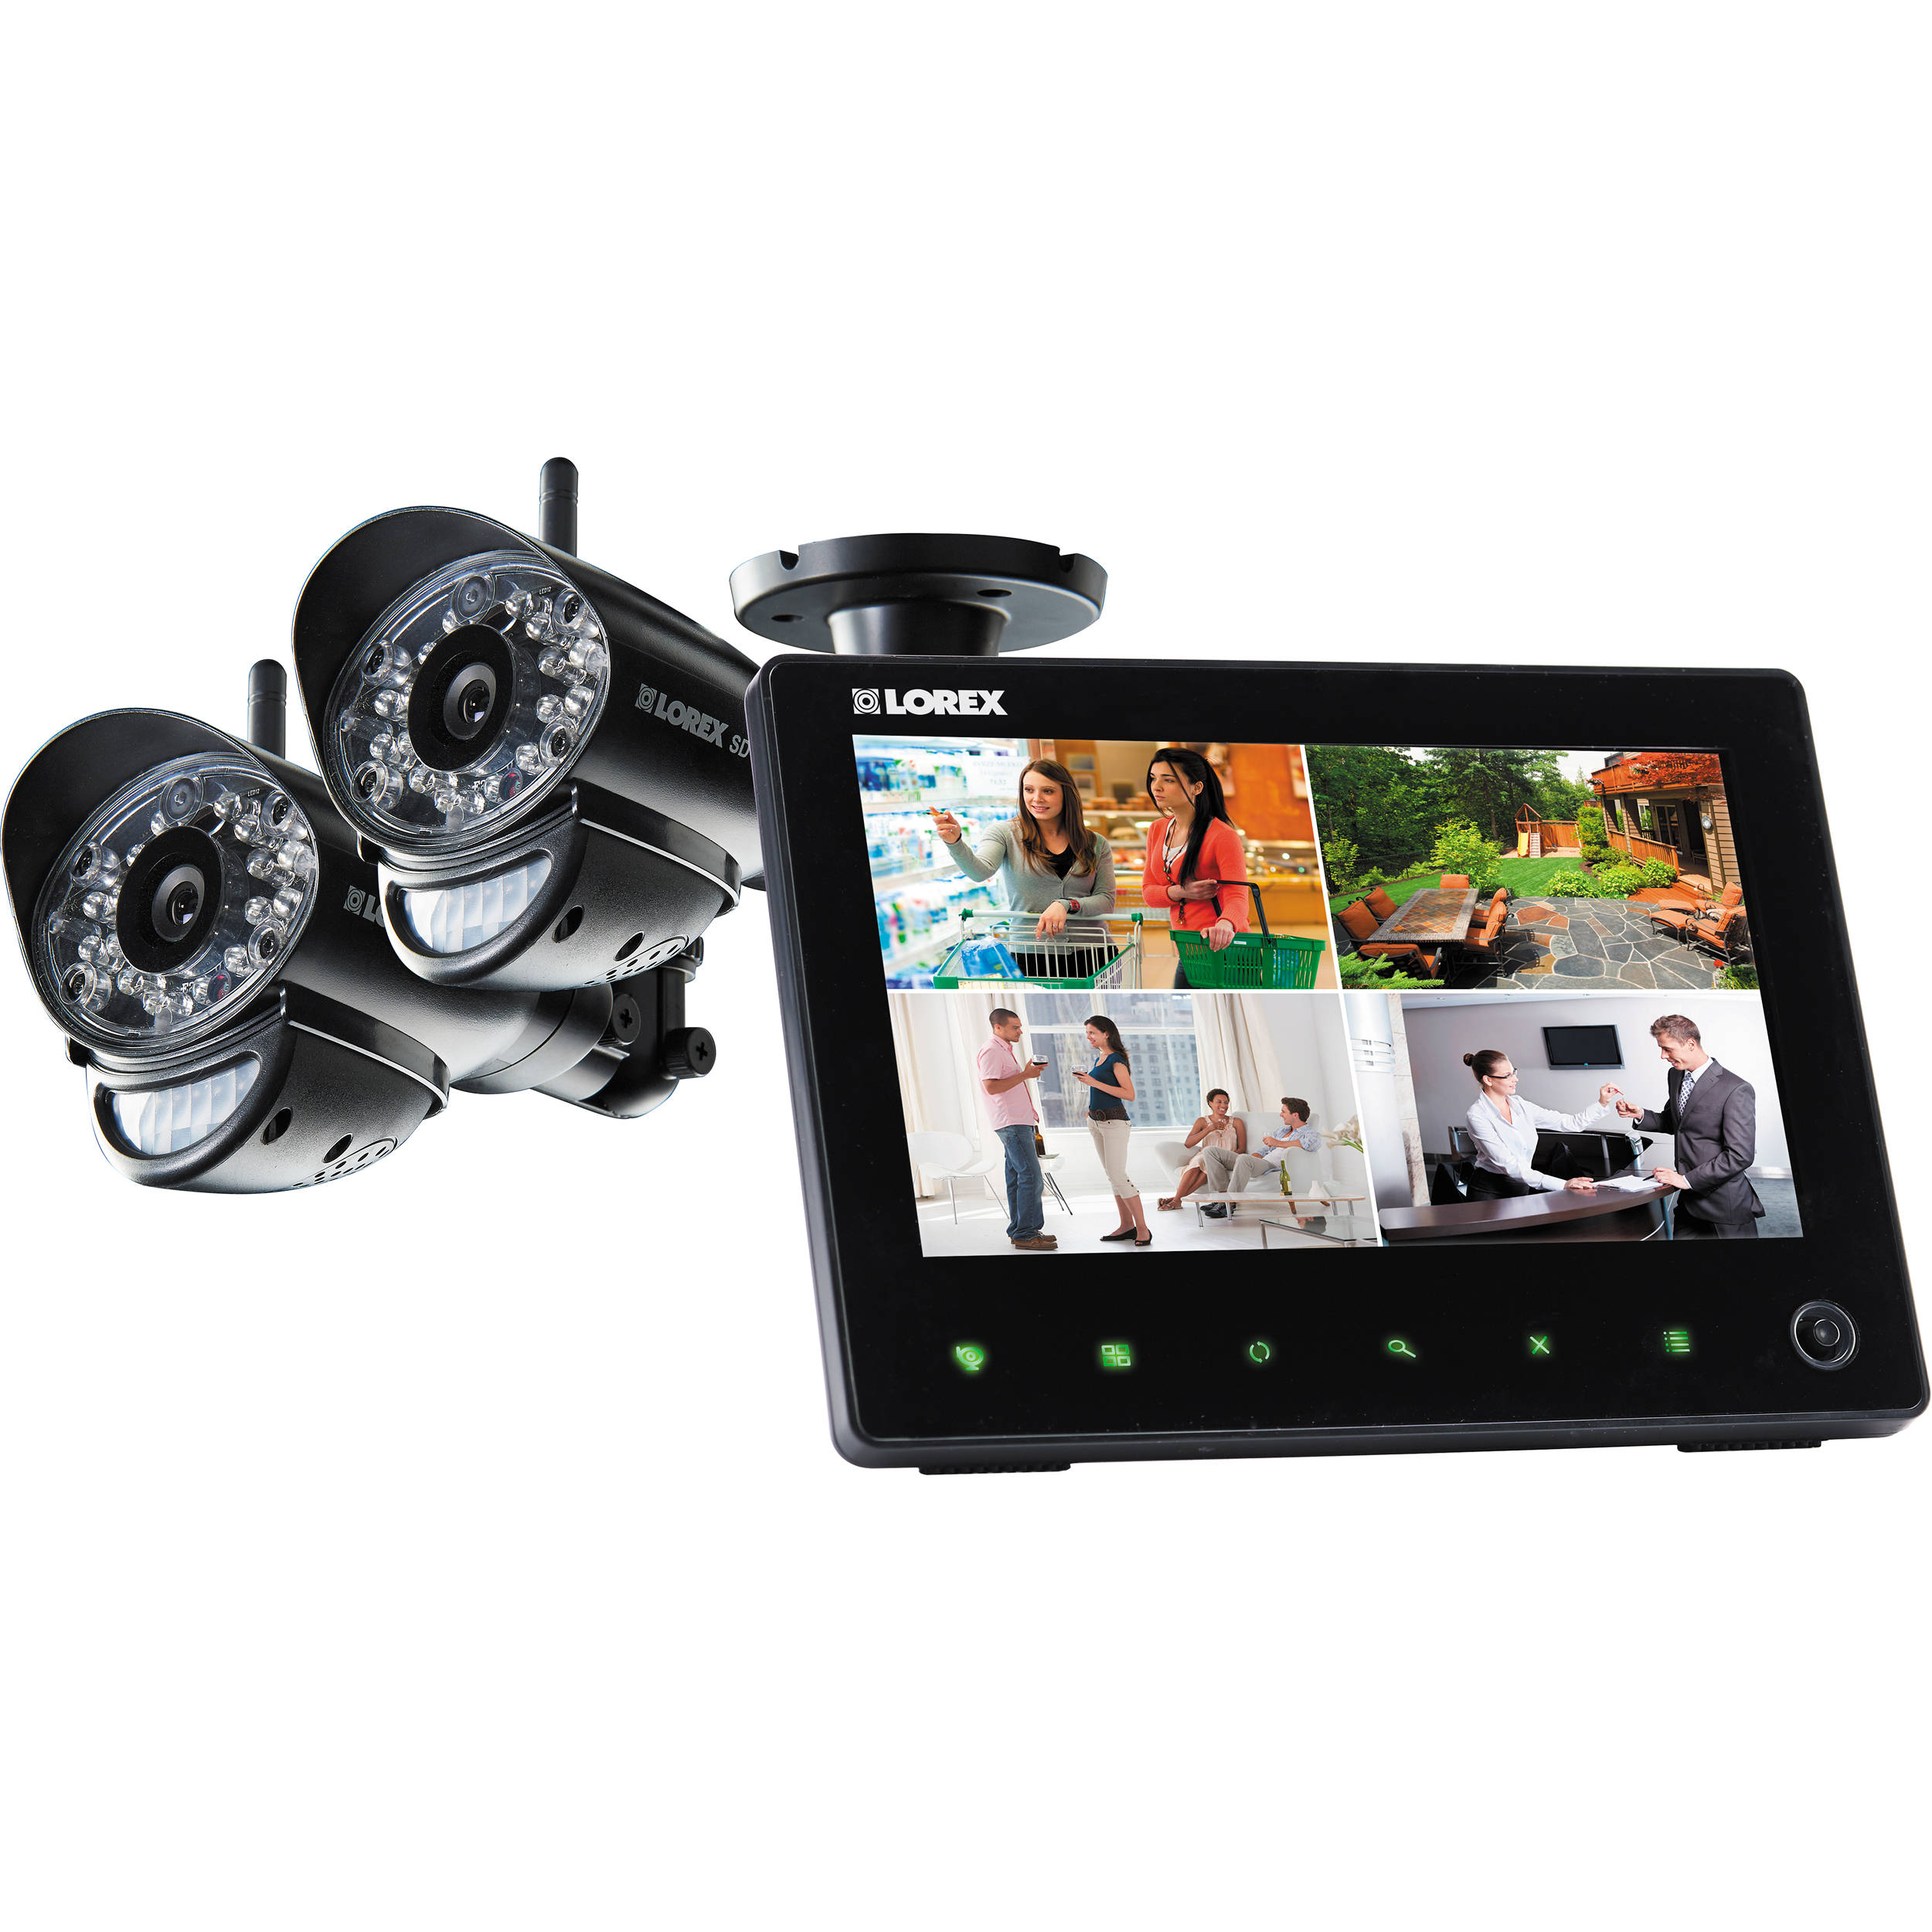 Find great deals on eBay for lorex wireless camera. Shop with confidence.